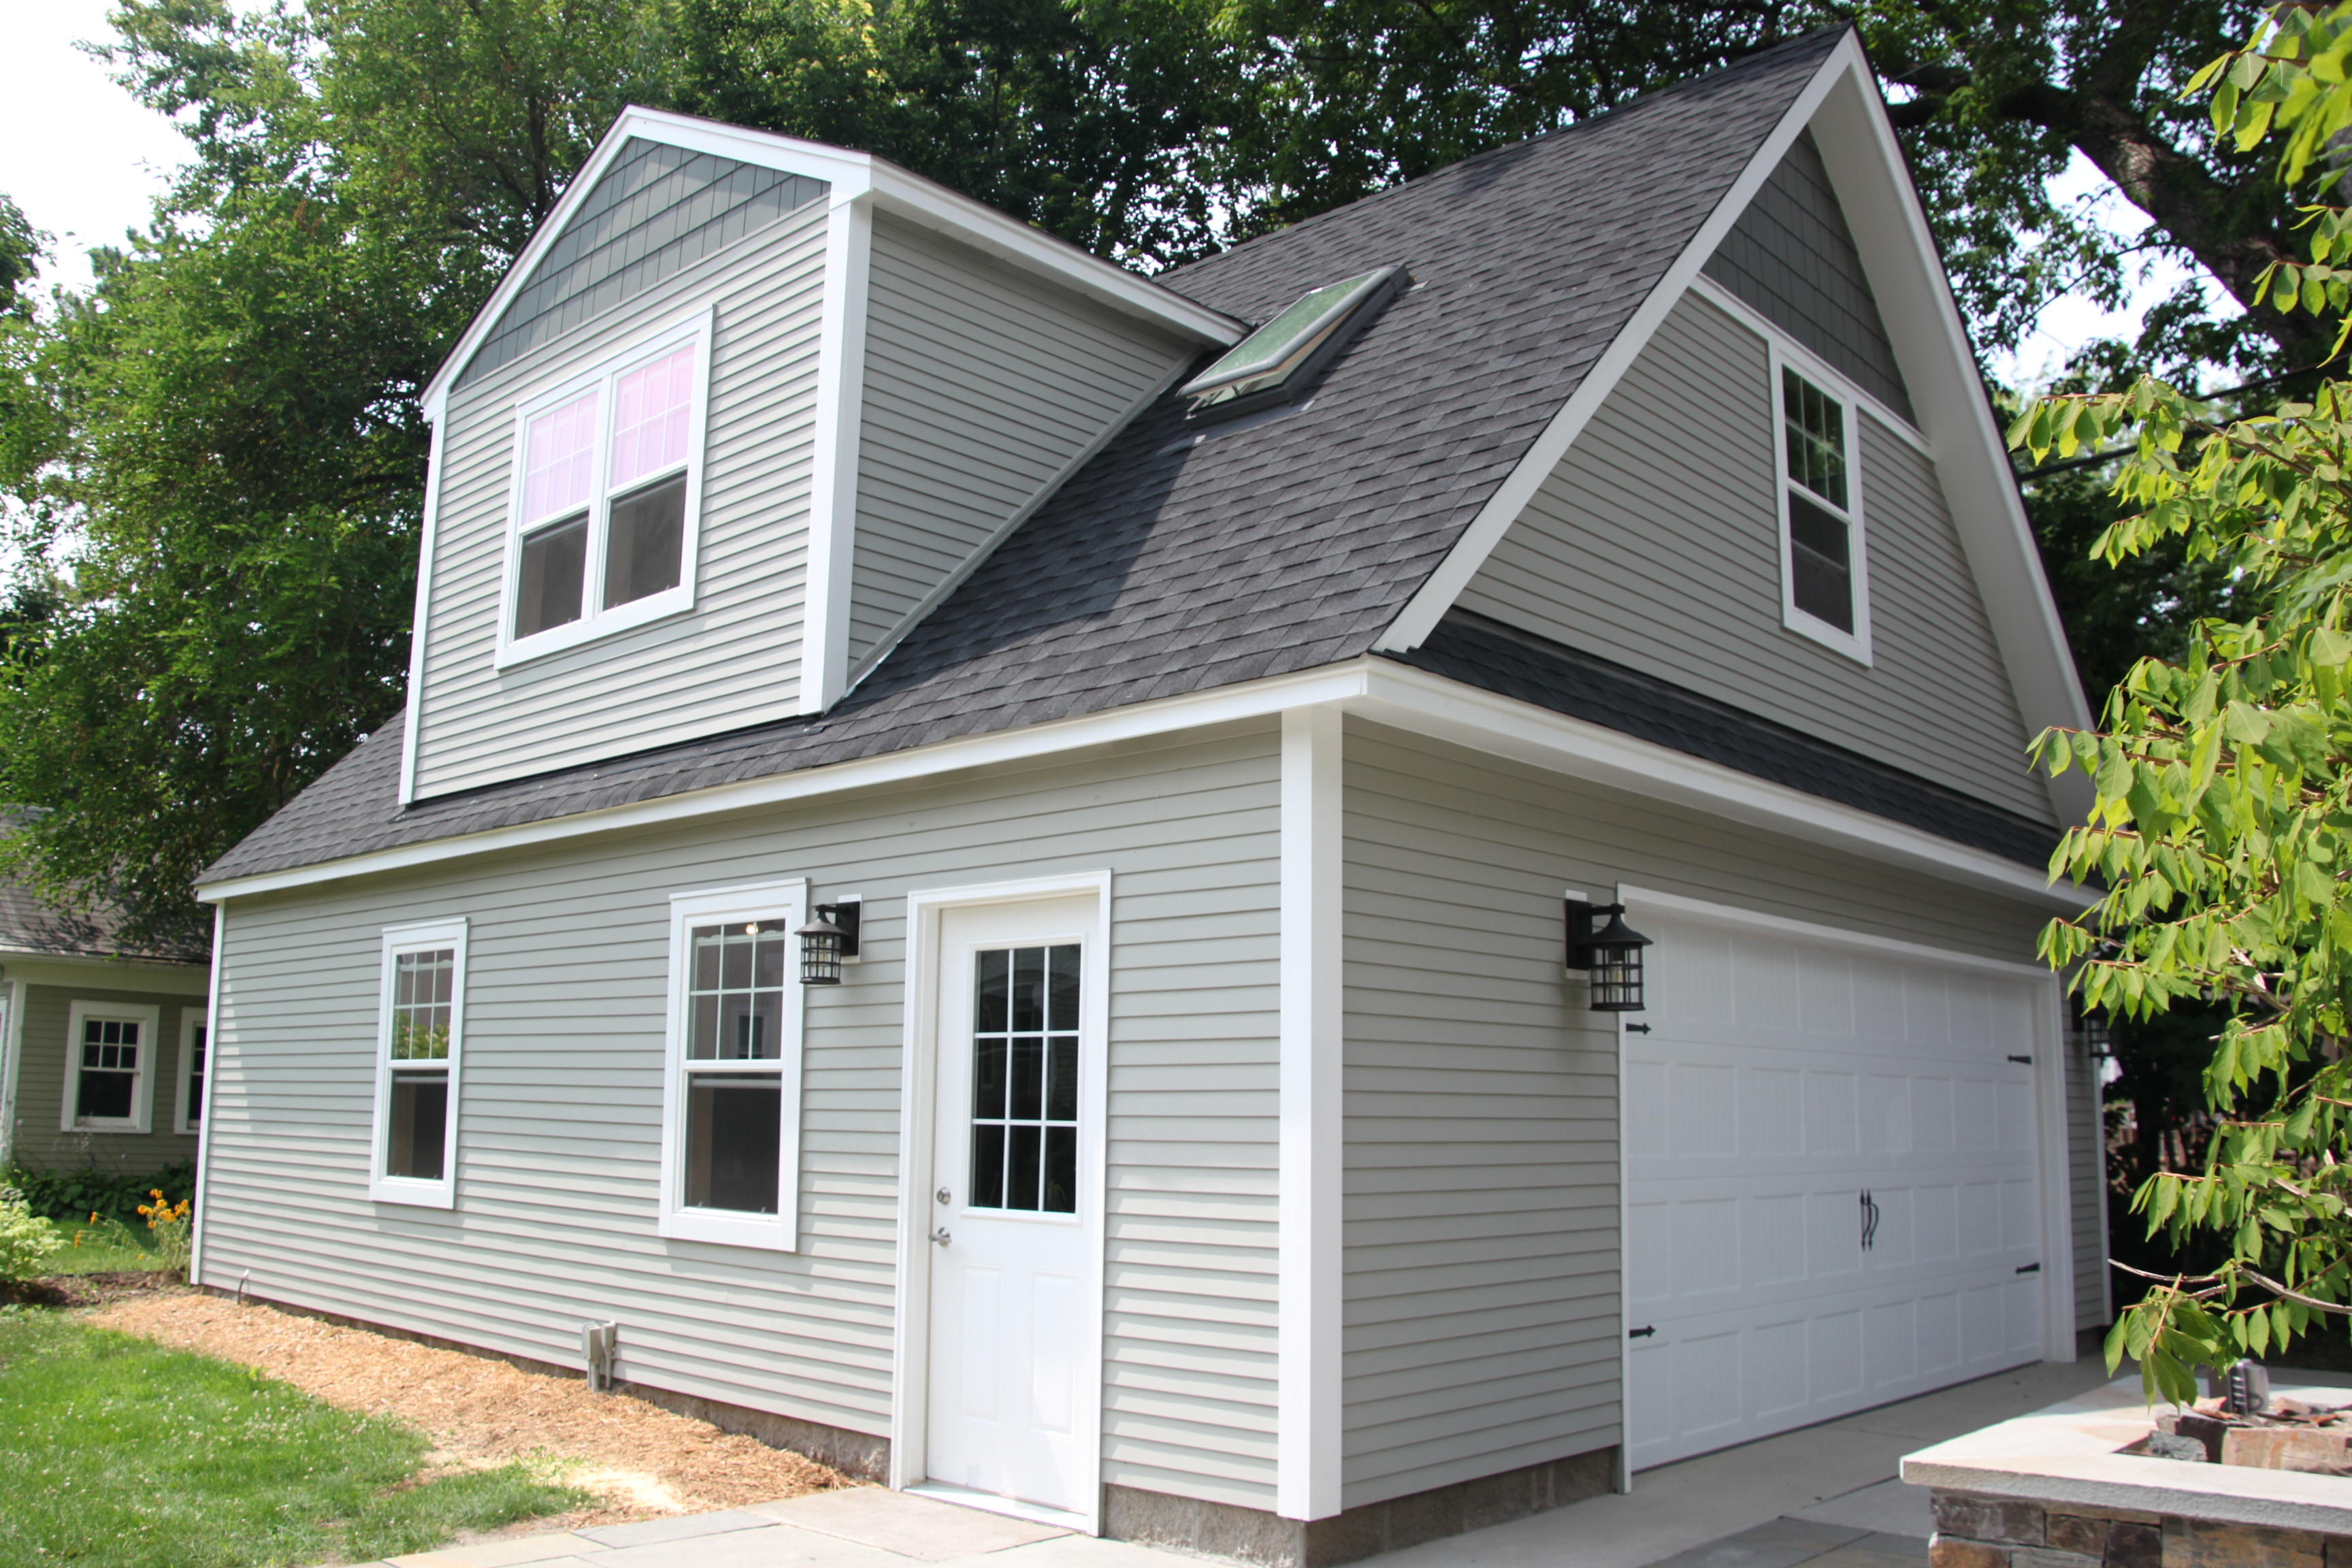 2 Car 2 Story Garage Using Attic Trusses And Dormer